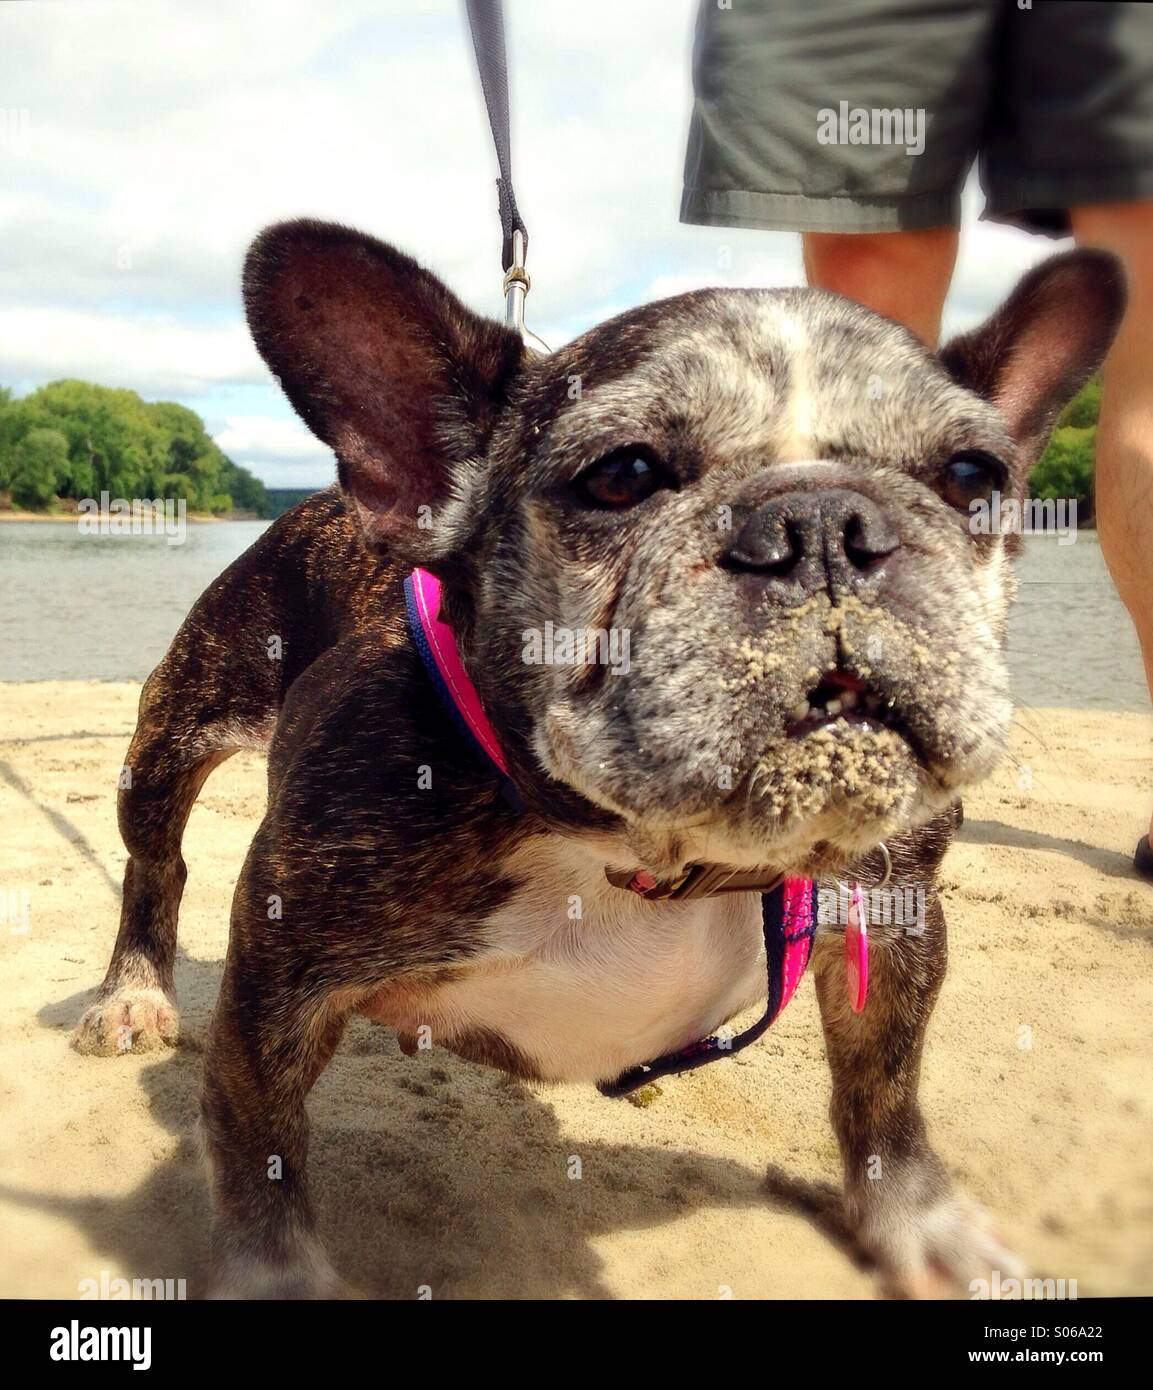 A funny french bulldog with sand on her face. - Stock Image